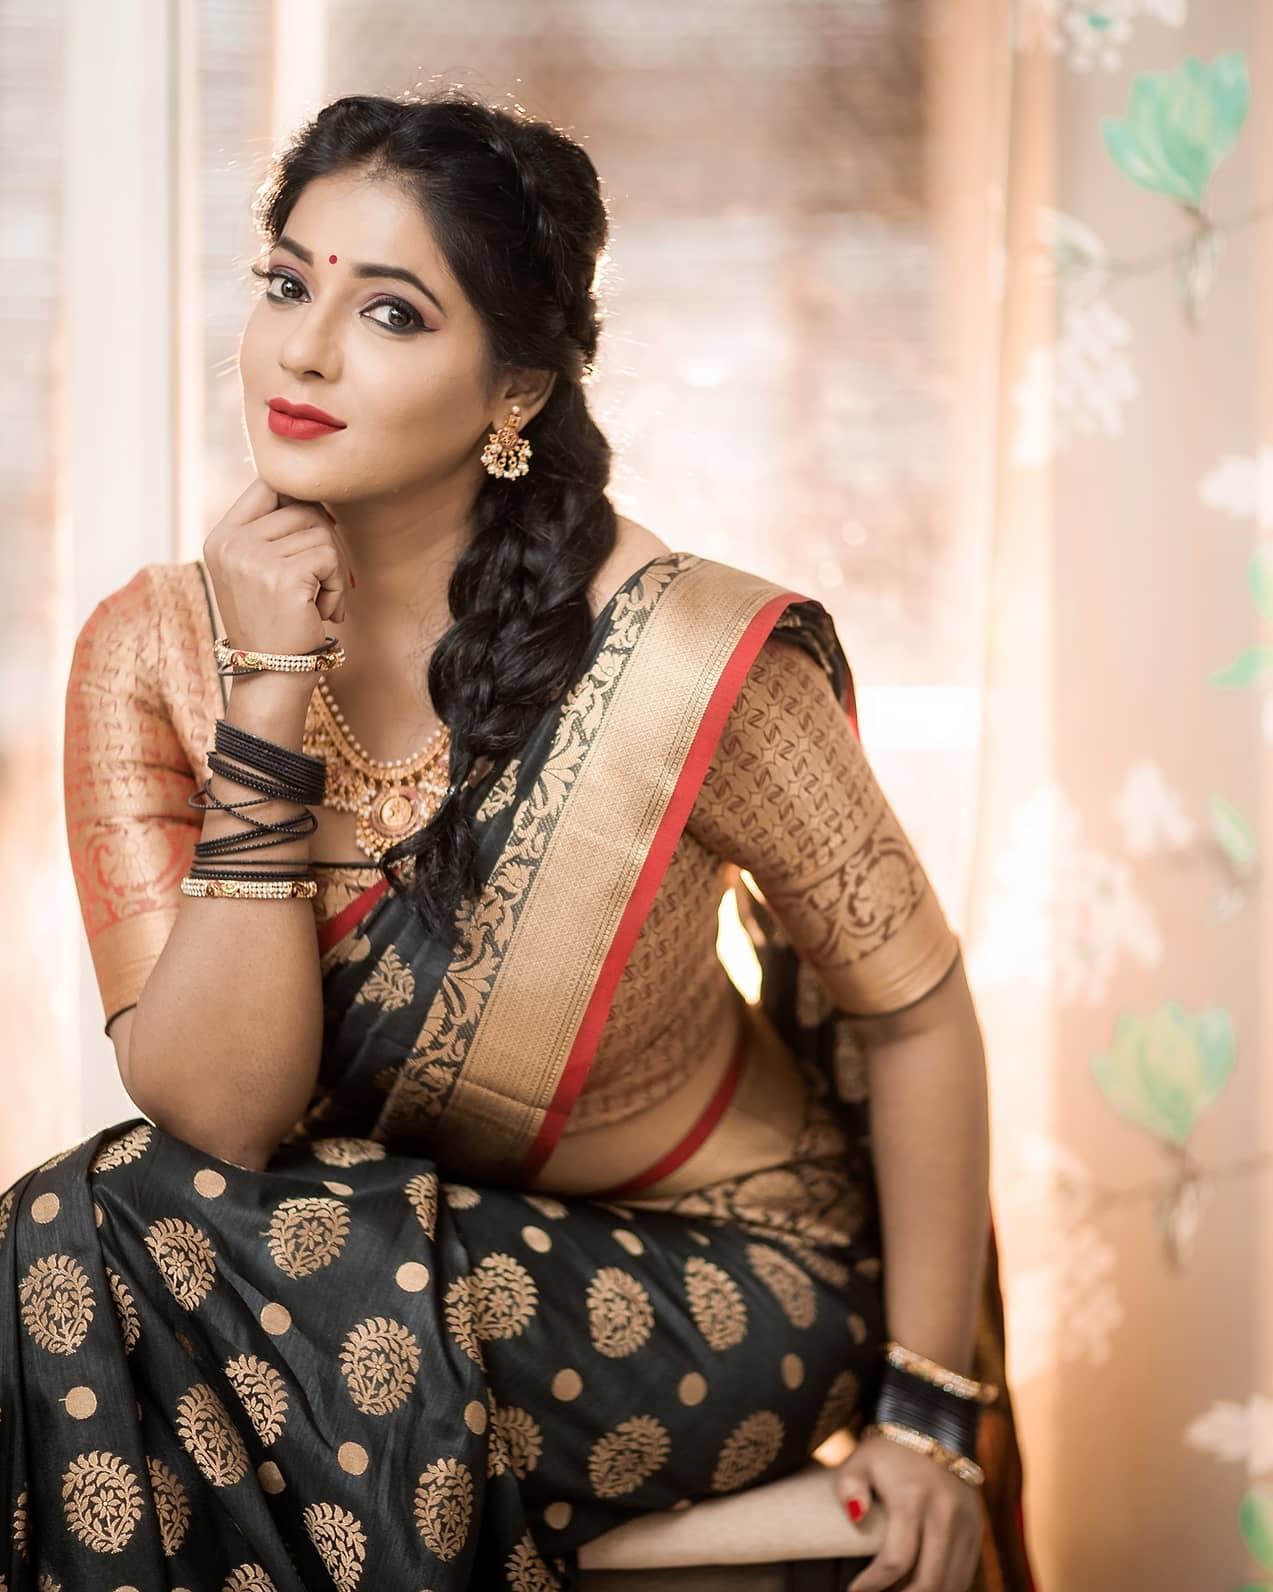 Reshma-Pasupuleti-latest-saree-photo-17